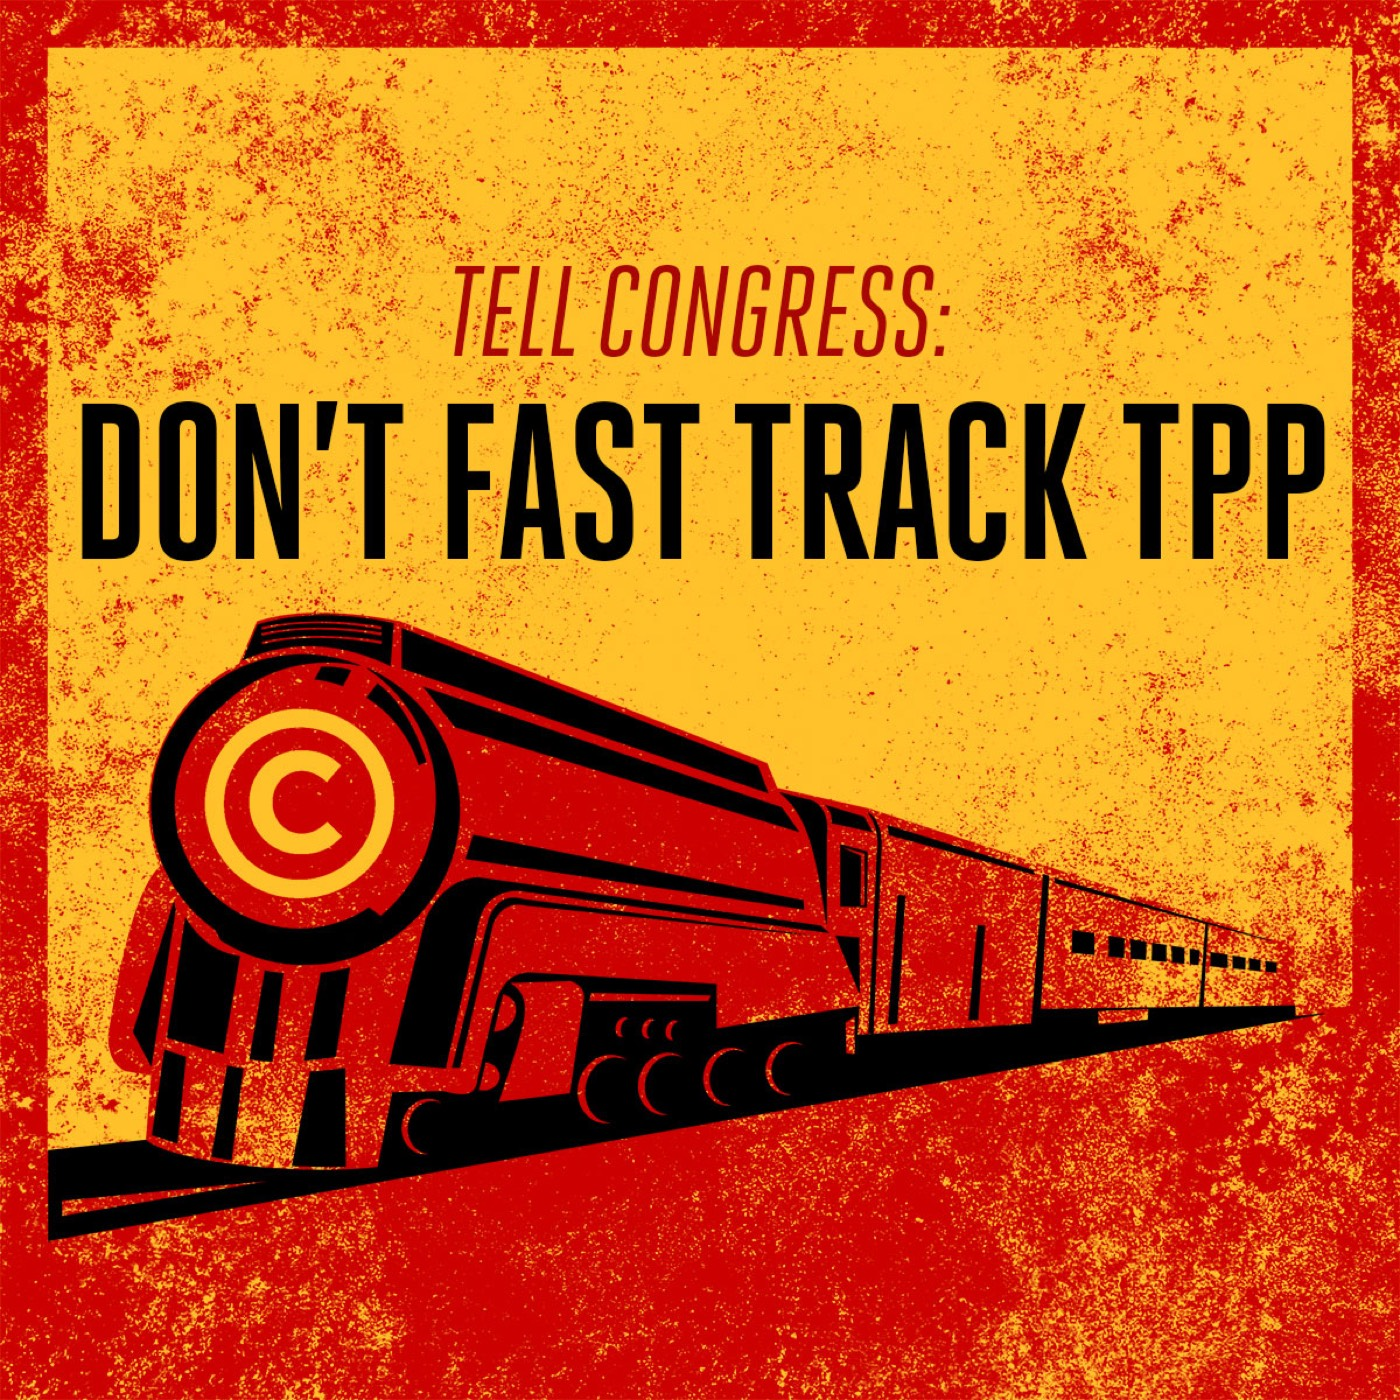 (2015/02/06) Resisting global corporate takeover (Trans-Pacific Partnership)